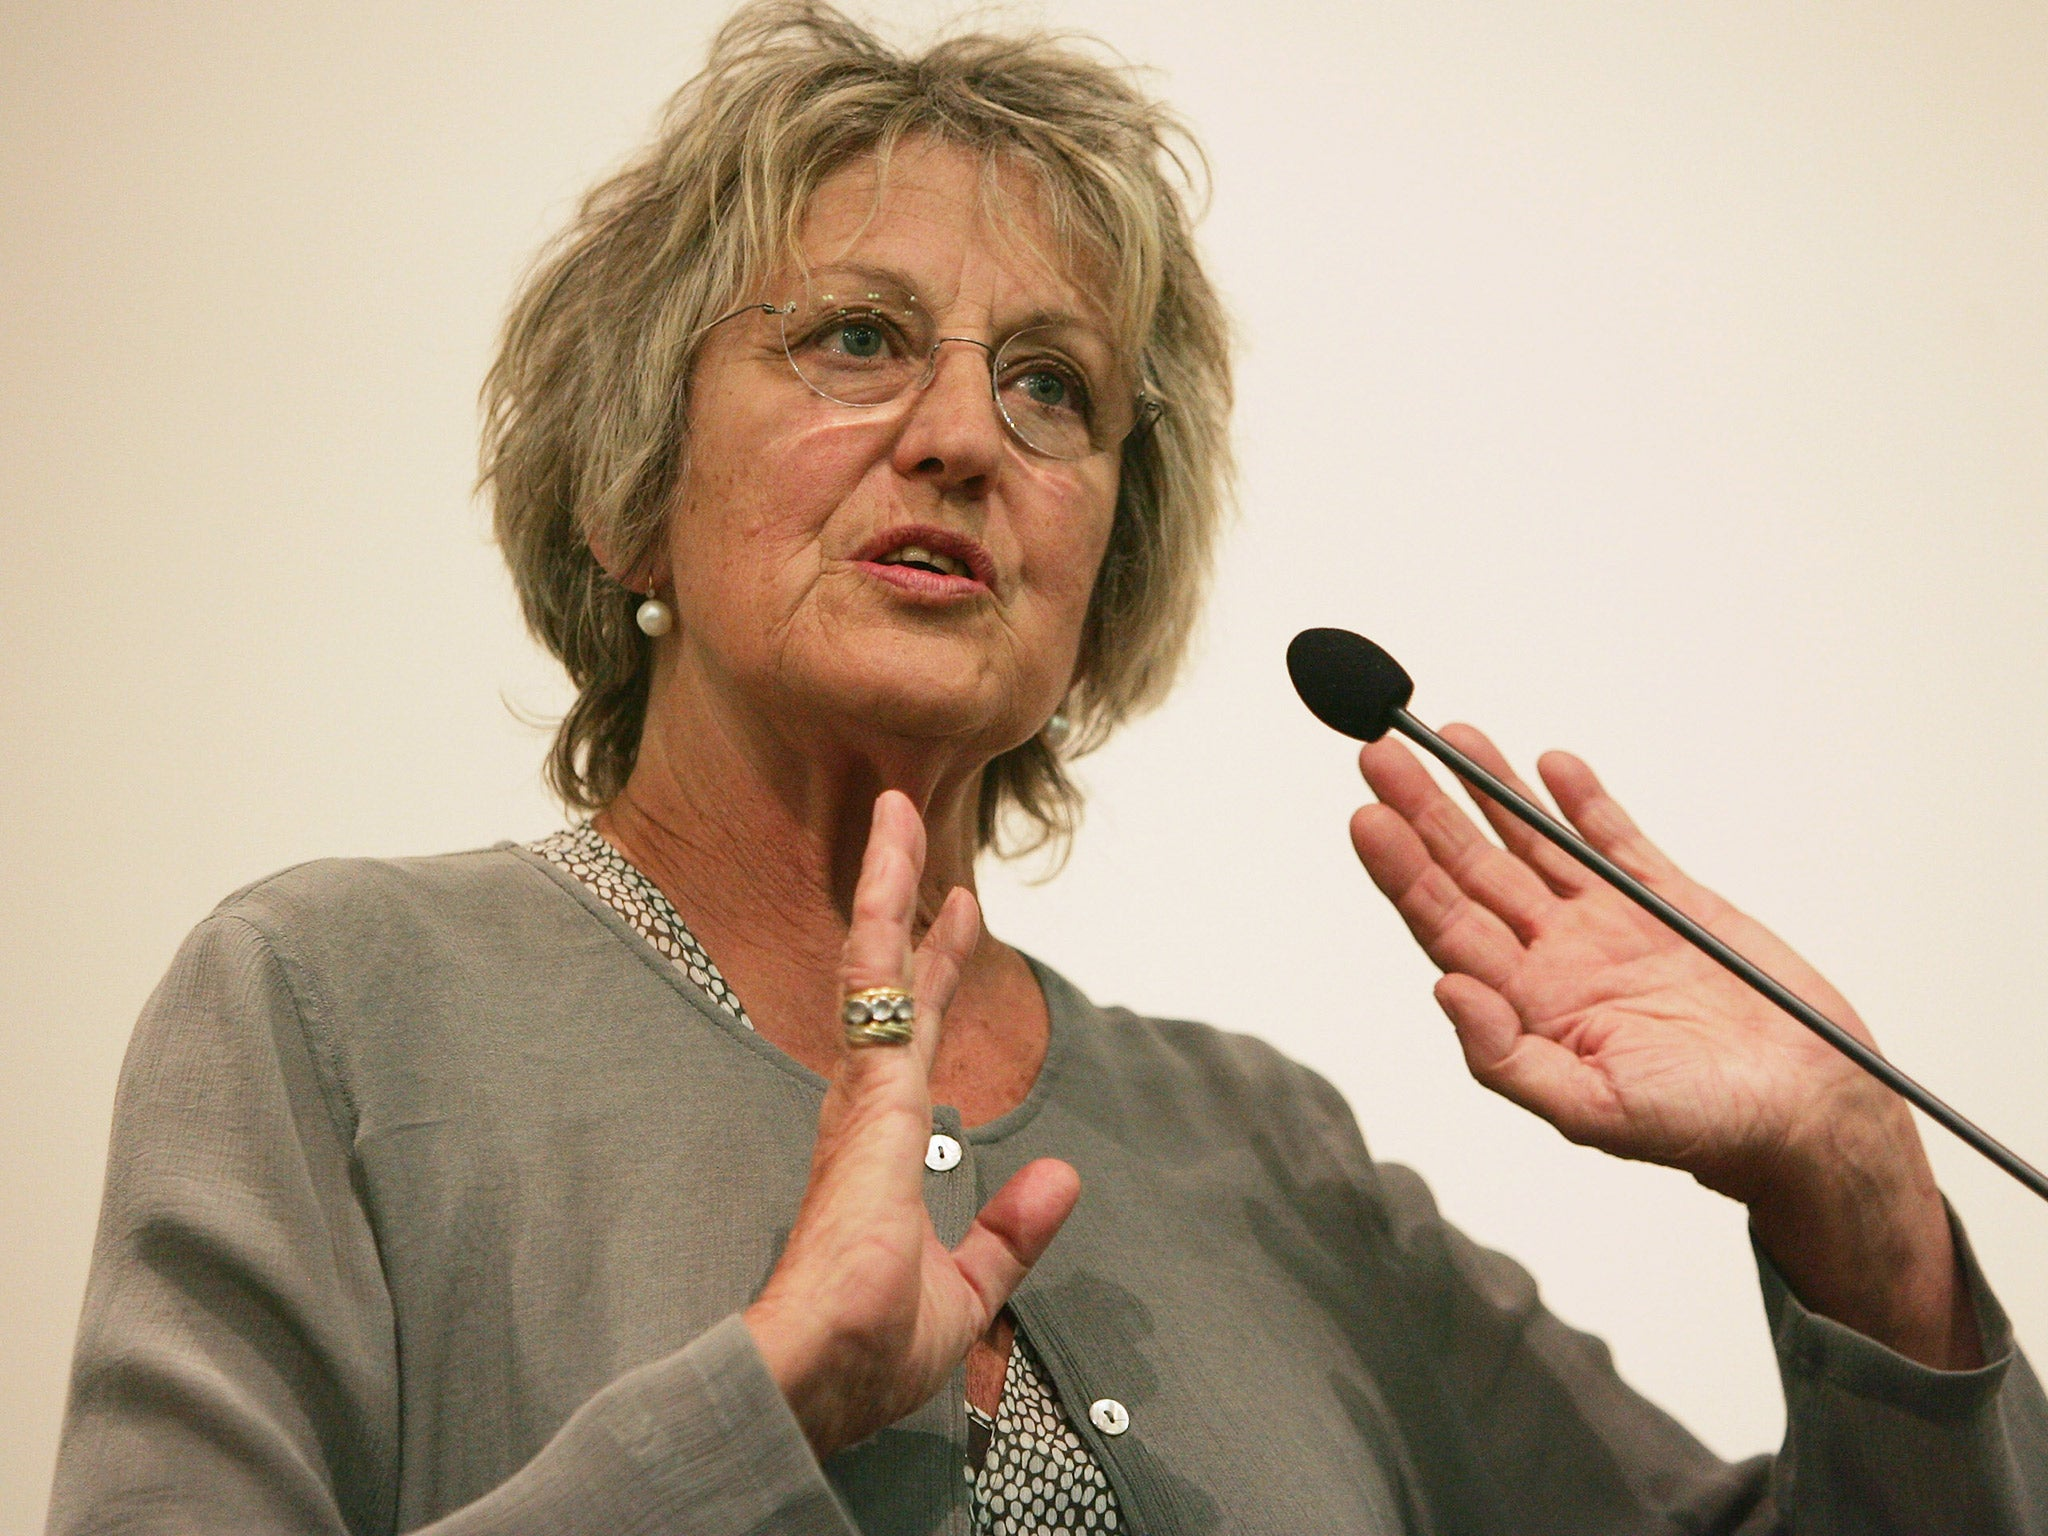 germaine greer - photo #3